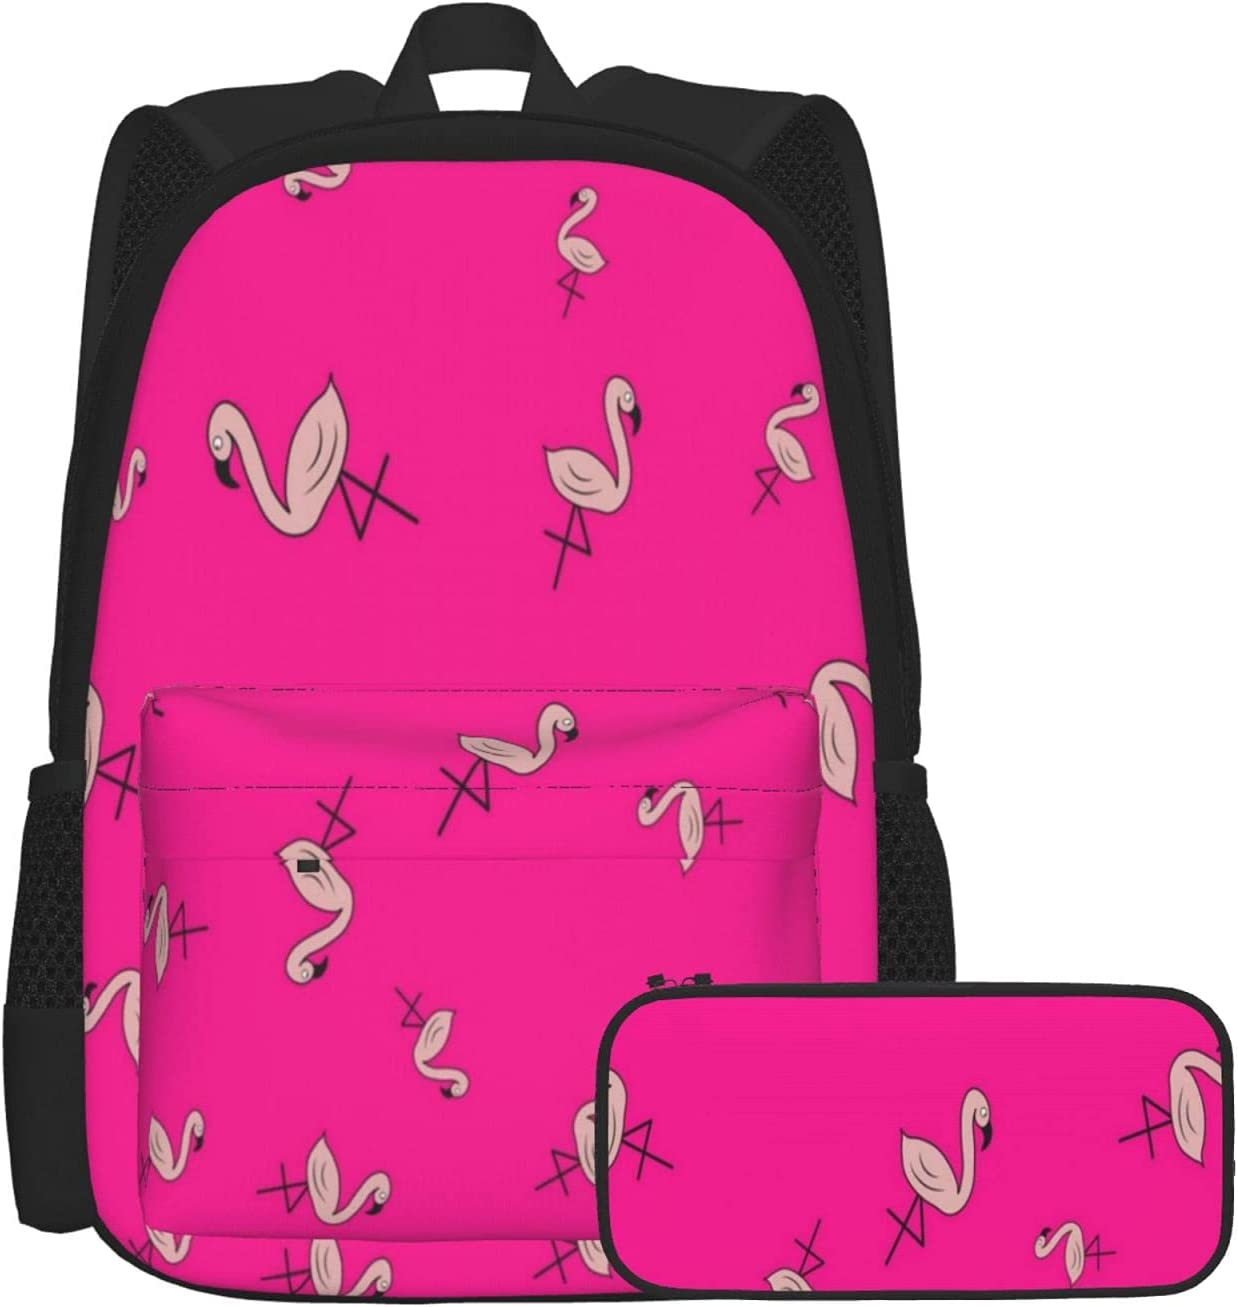 Gesdfwe Kids Backpack Flamingos School Cartoon In Cash special price Beauty products Style